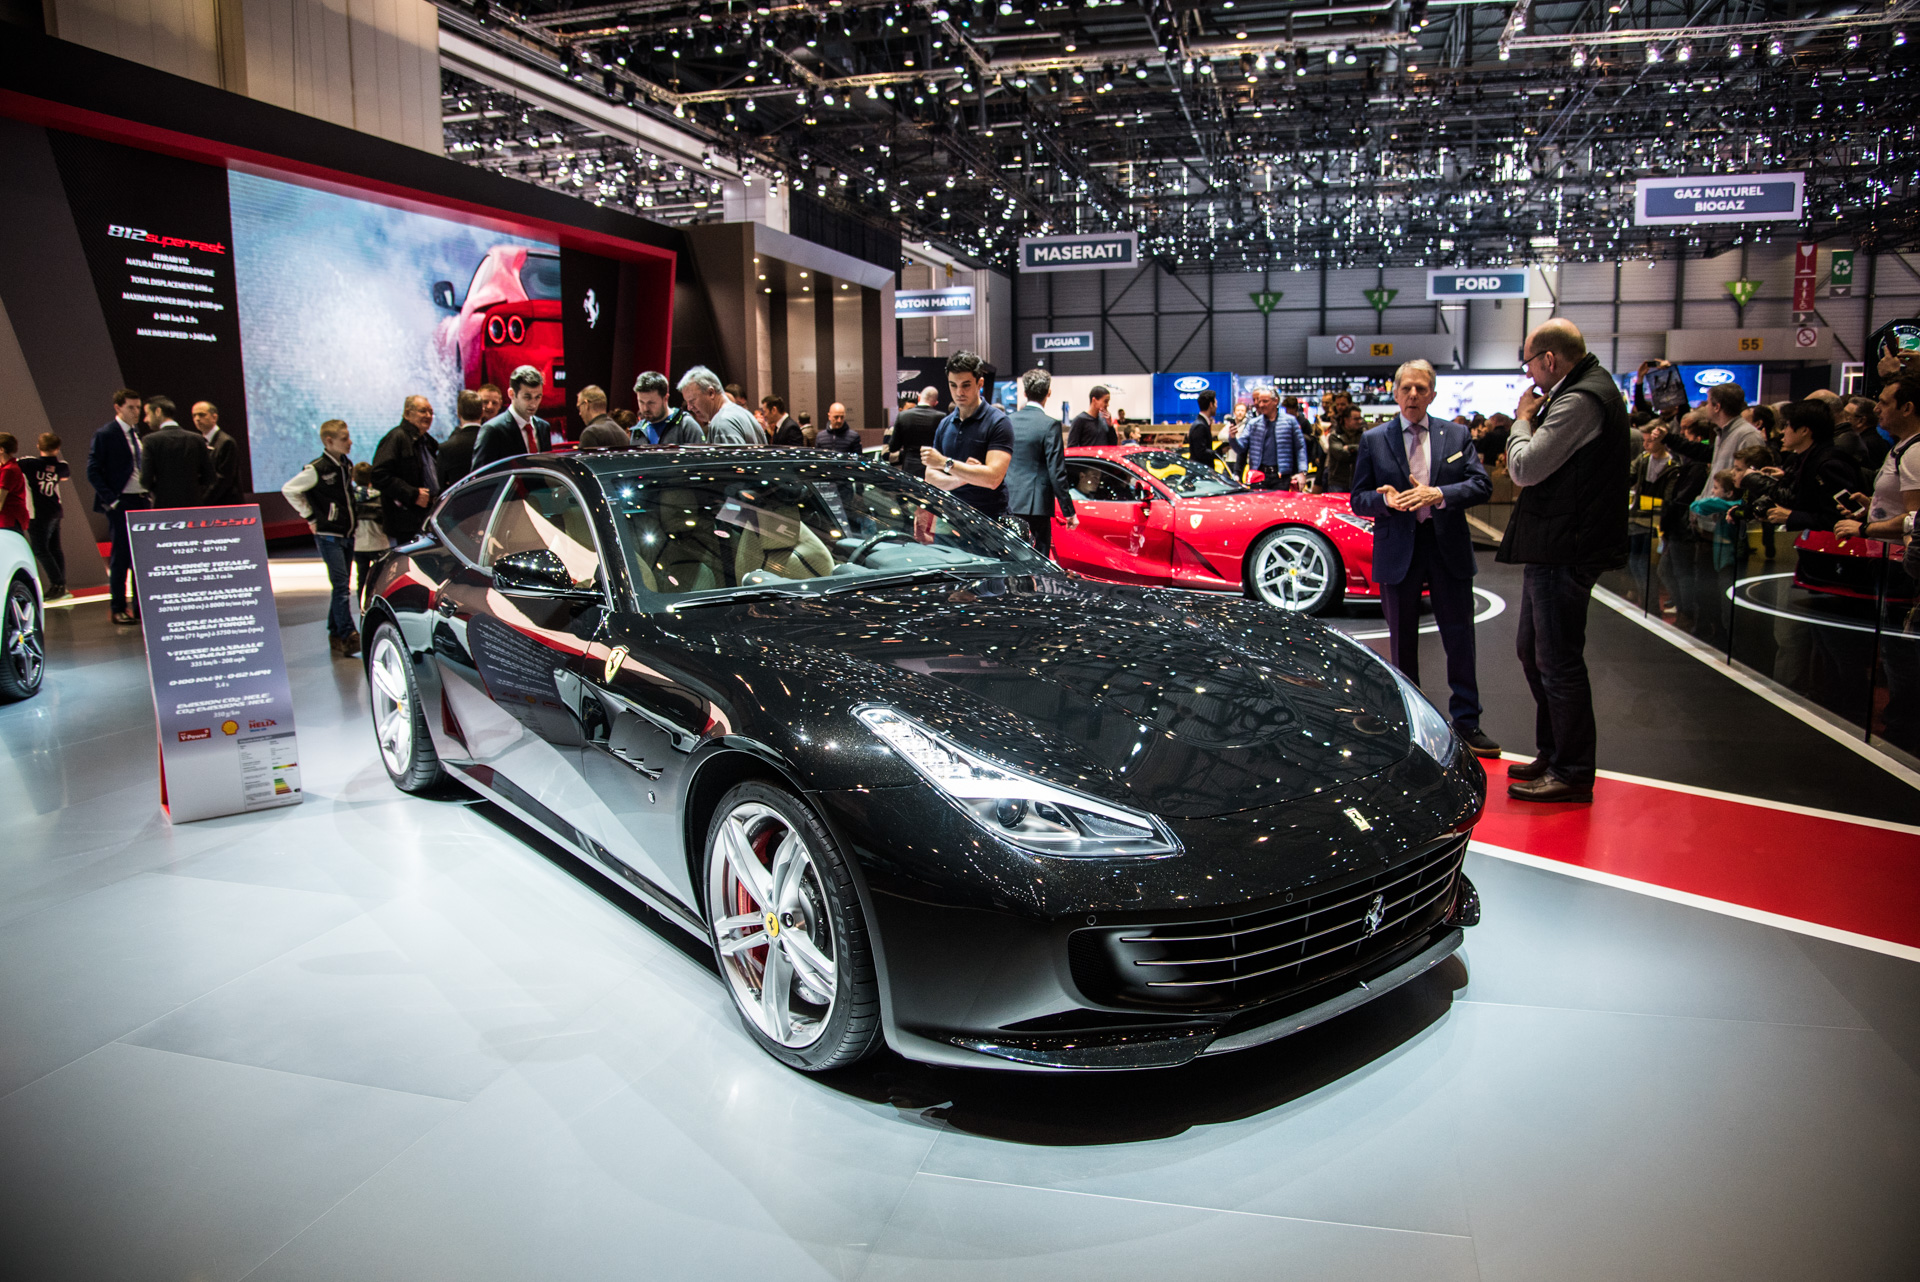 geneva-international-motor-show-igor-sinitsin-12